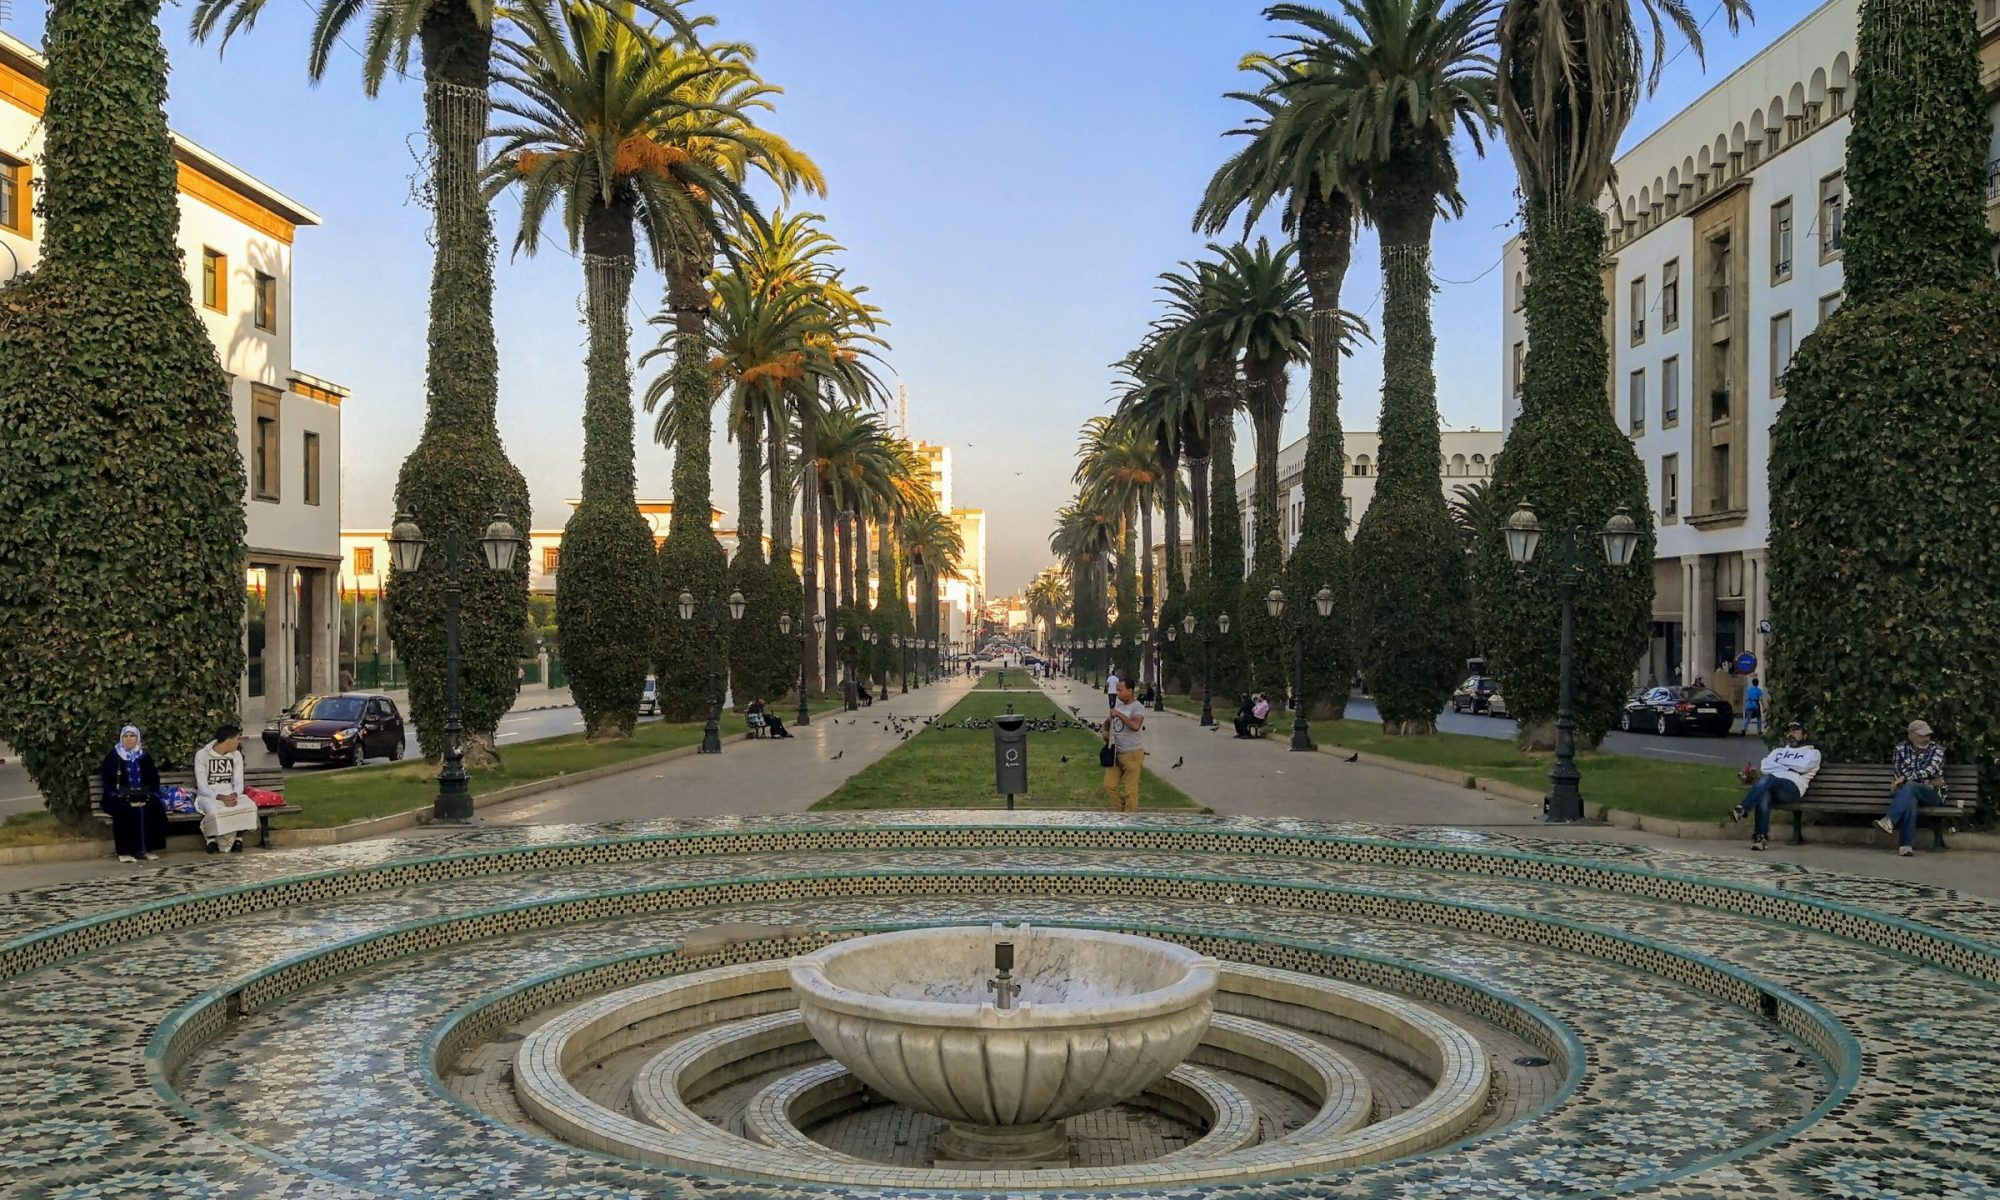 An alley of palm trees and a fountain in the foreground in Rabat, Morocco